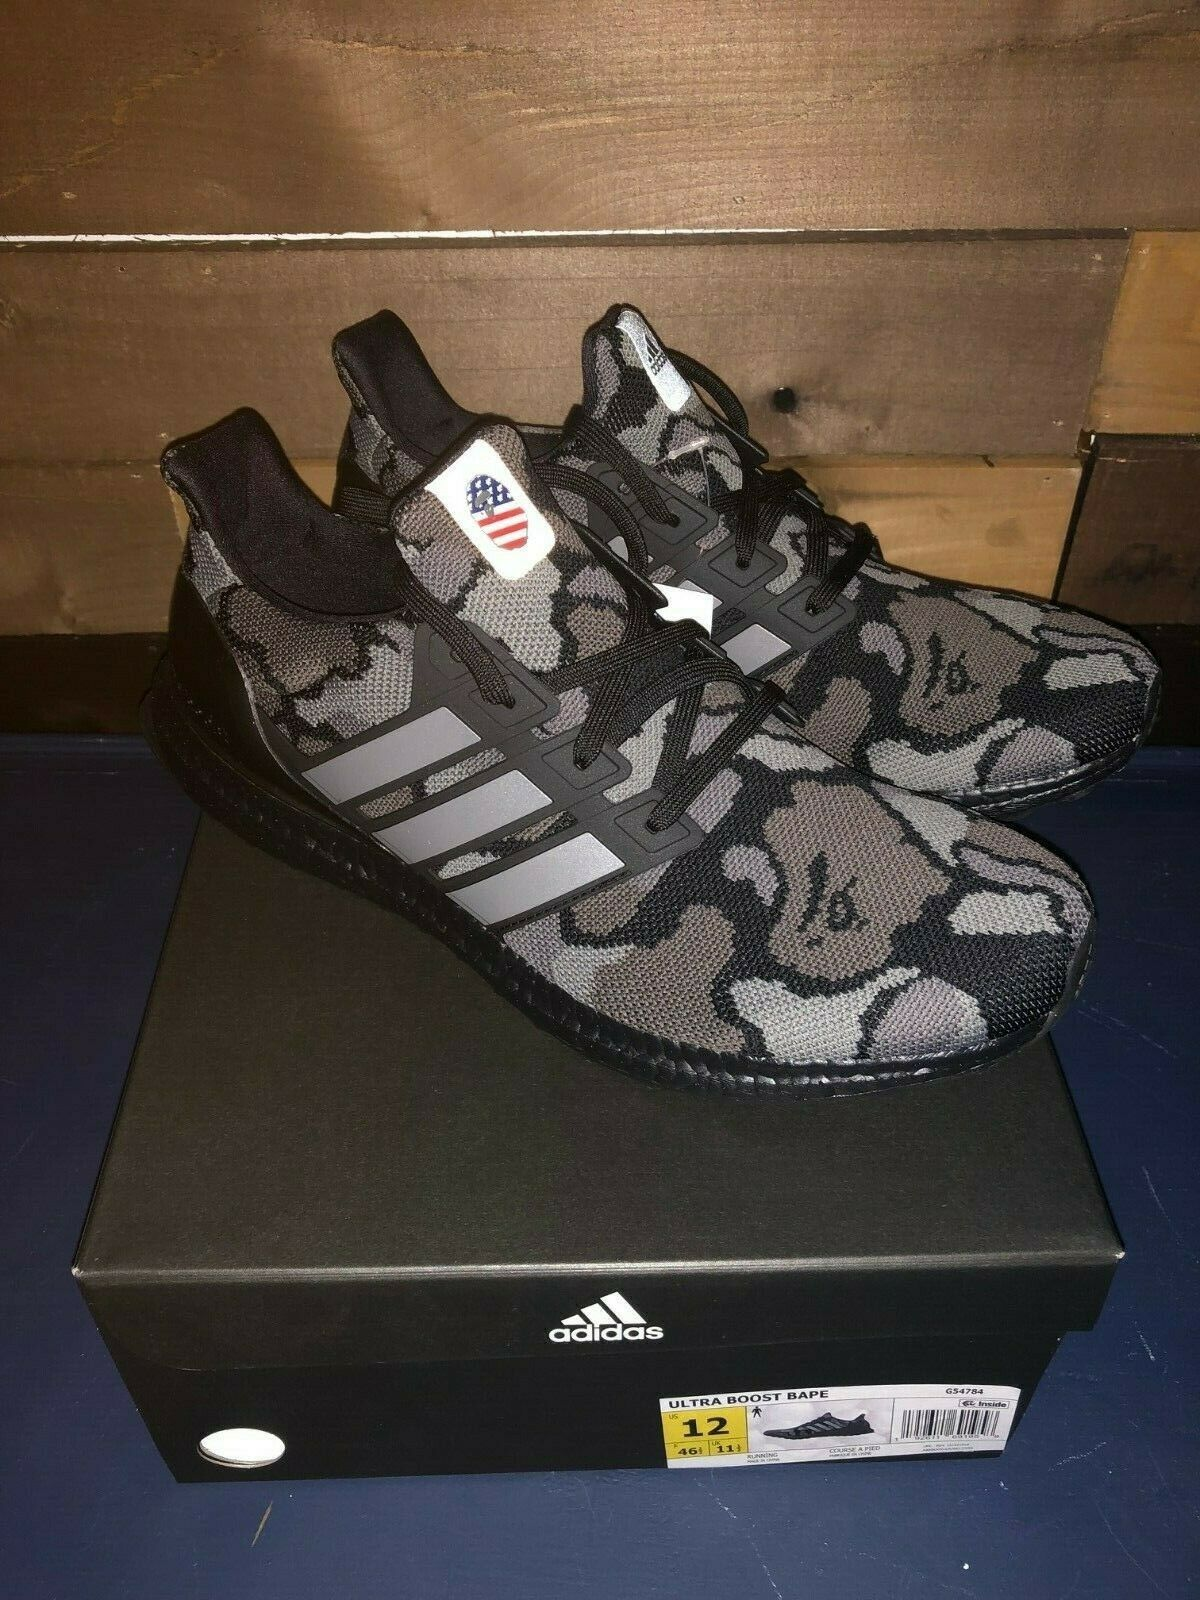 uk cheap sale for whole family buy Details about Adidas Ultra Boost 4.0 Bape Camo Black, Size ...